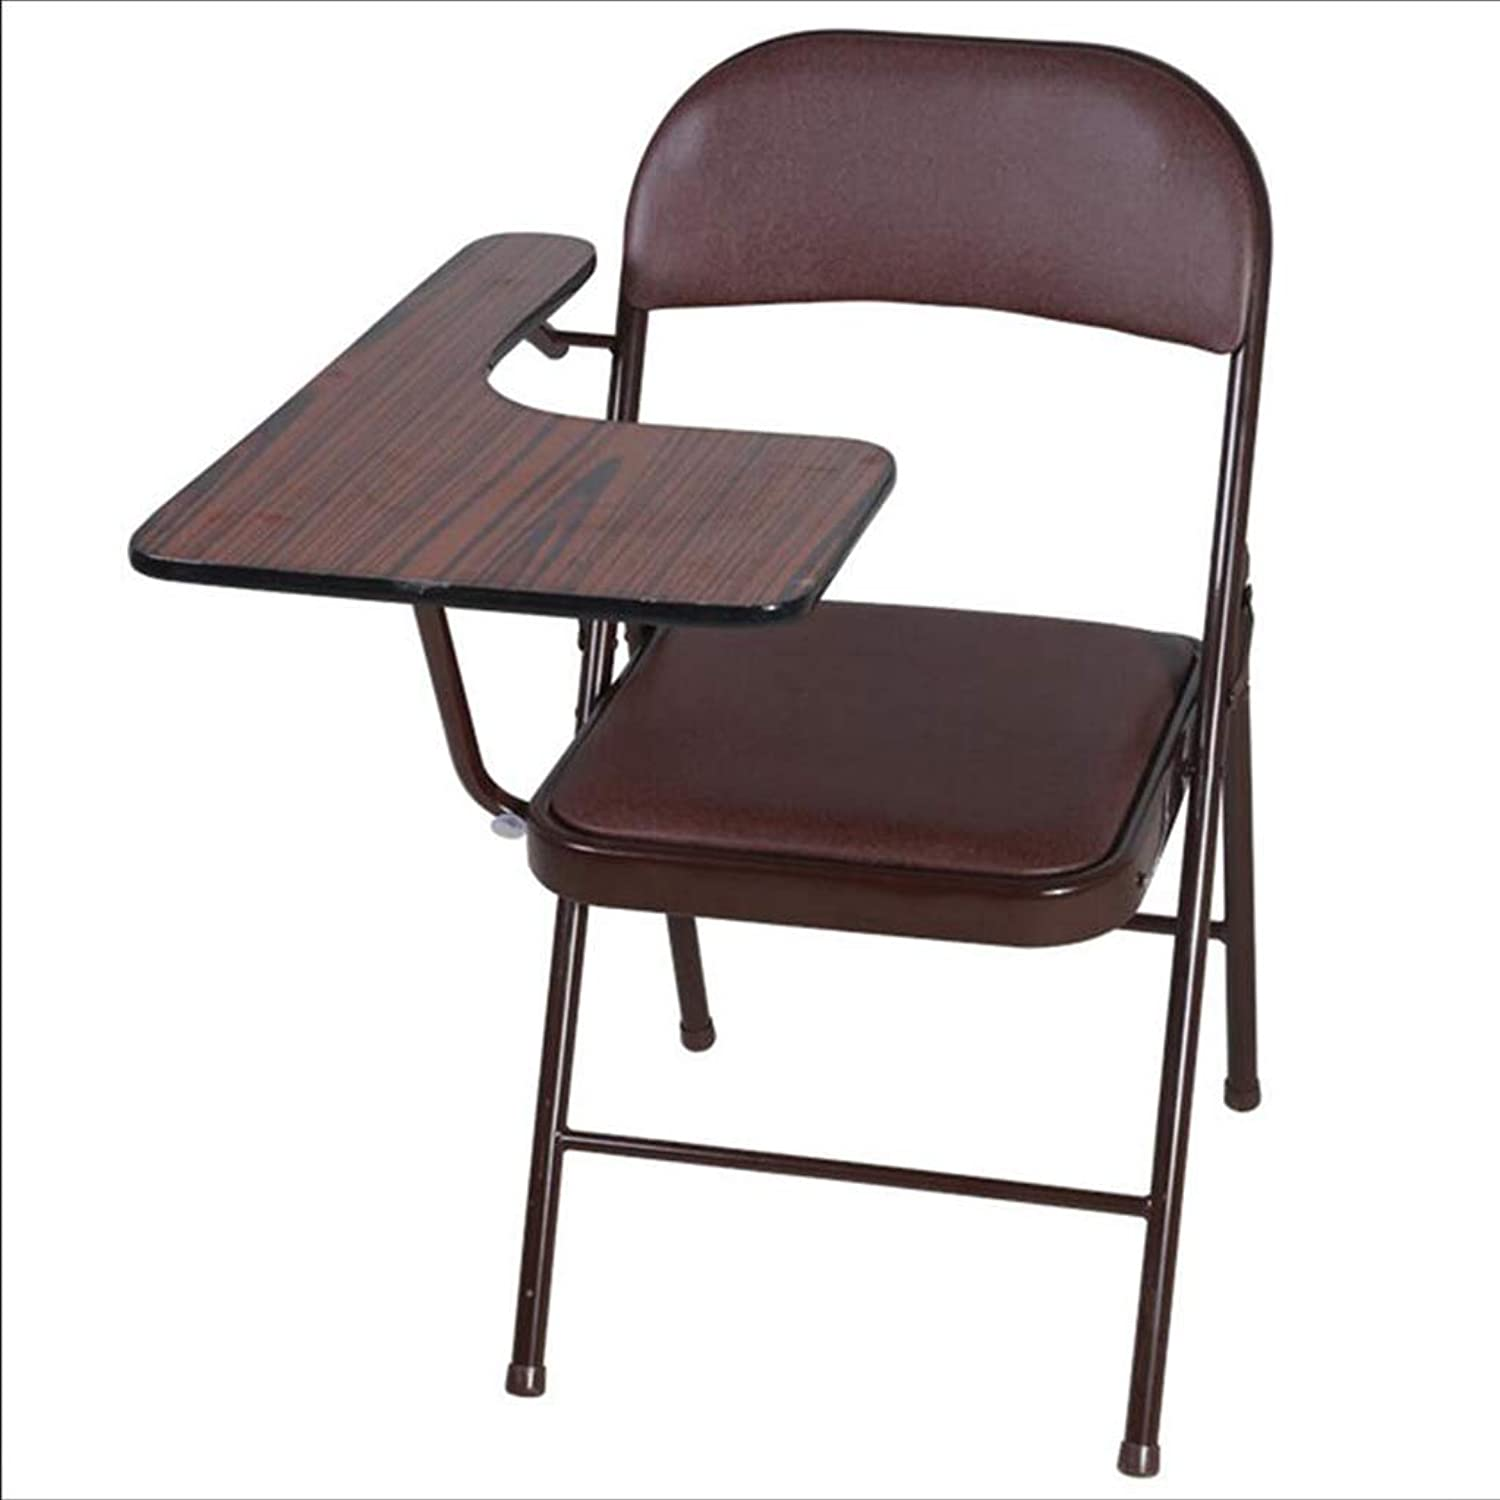 1186111b17a9 Chair Folding Student Meeting Board Writing with Chair Training ...